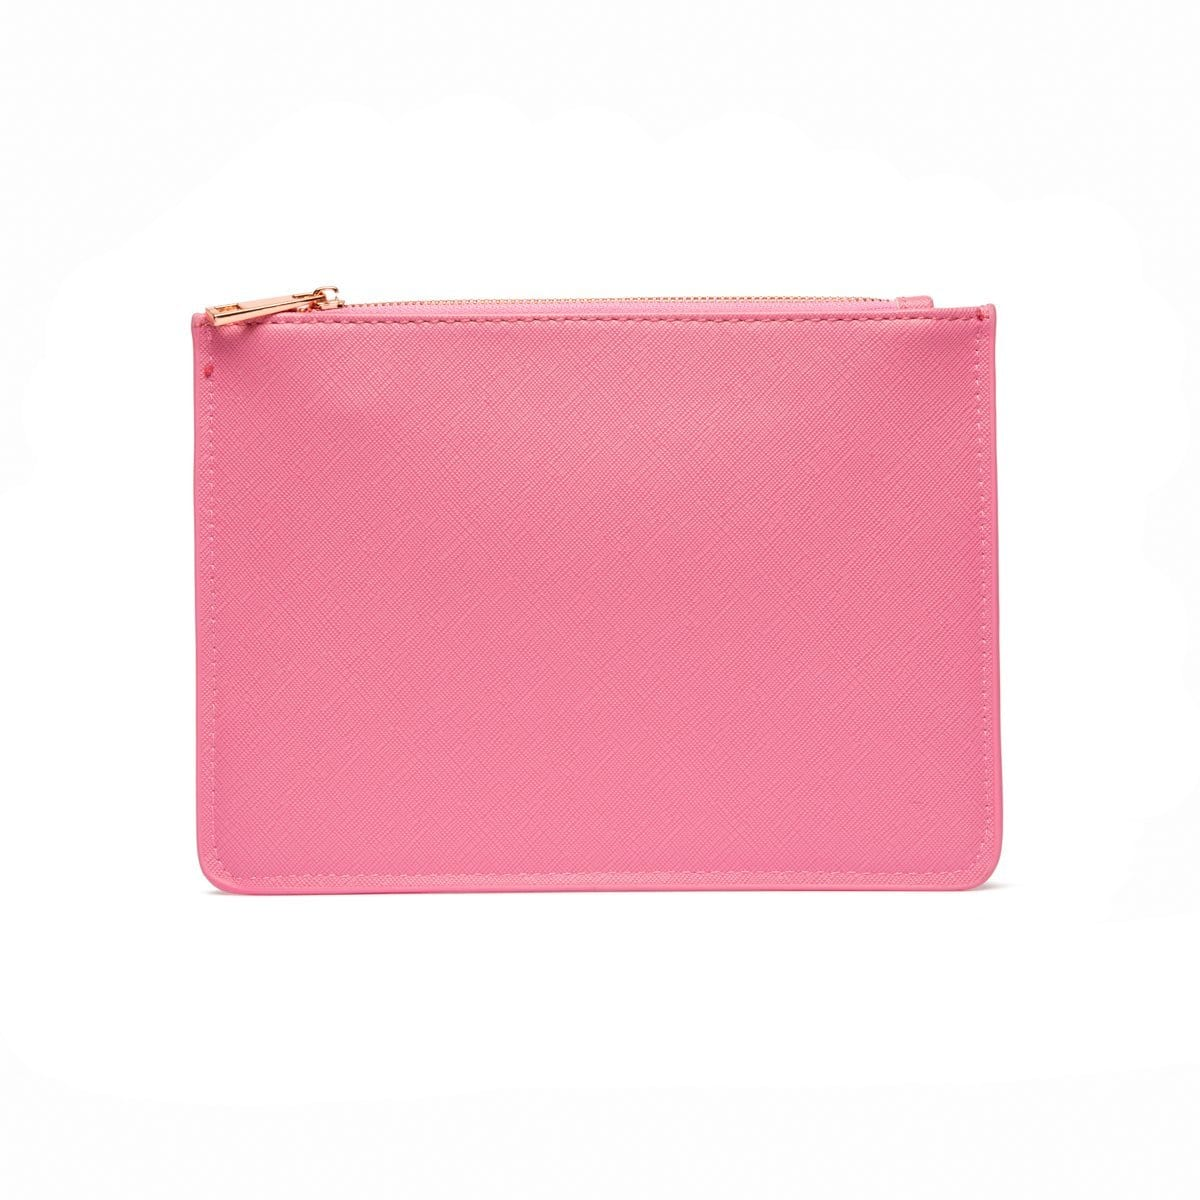 Flamingo Pink Sienna Clutch